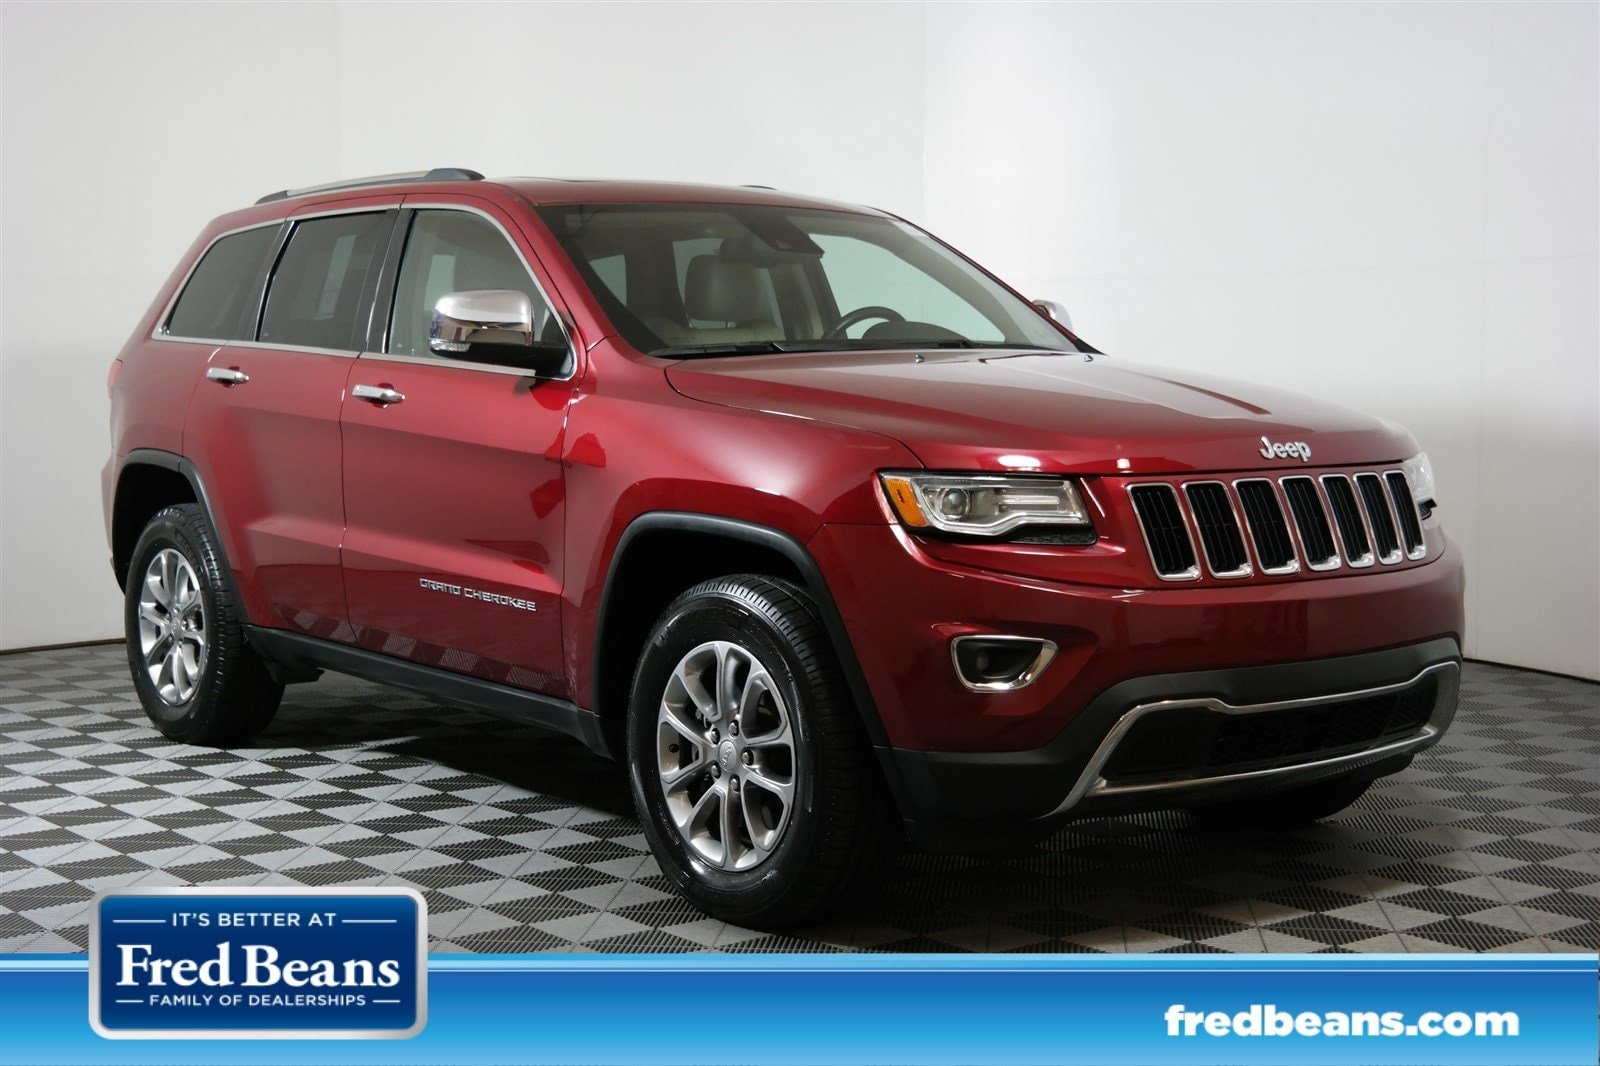 2015 Jeep Grand Cherokee Limited Diesel Lux II 4WD  Limited